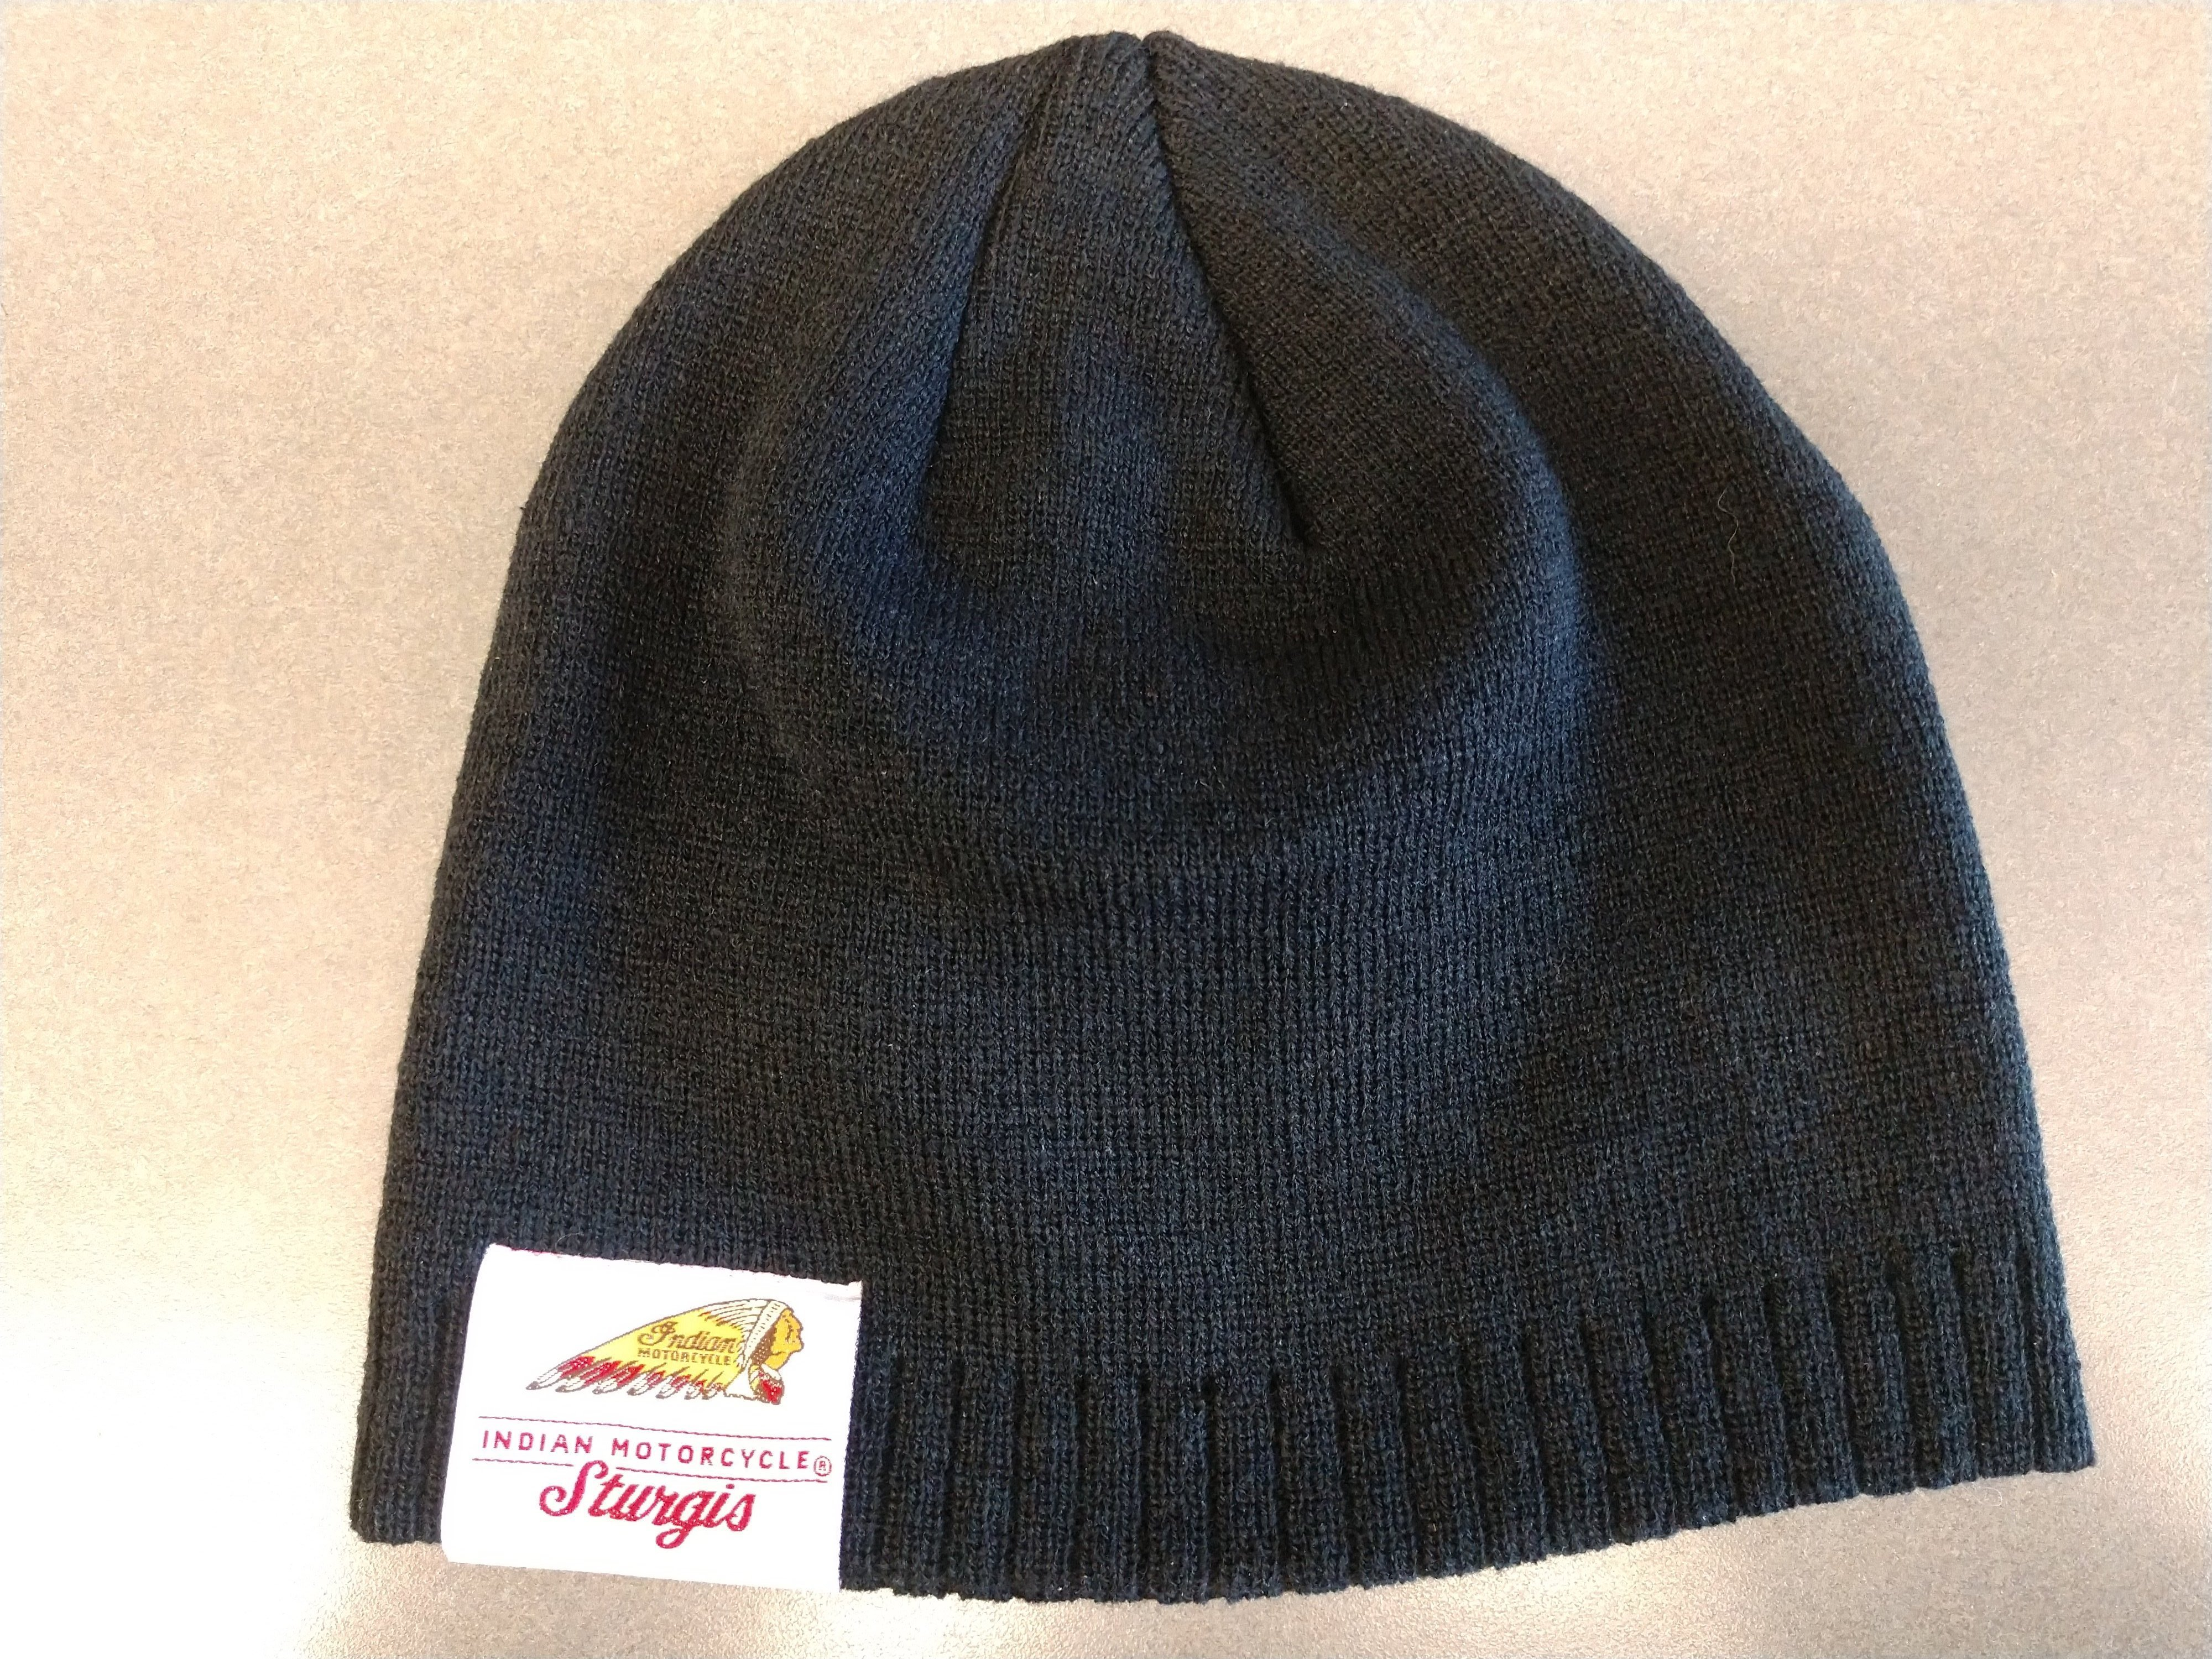 Indian Motorcycle Sturgis beanie